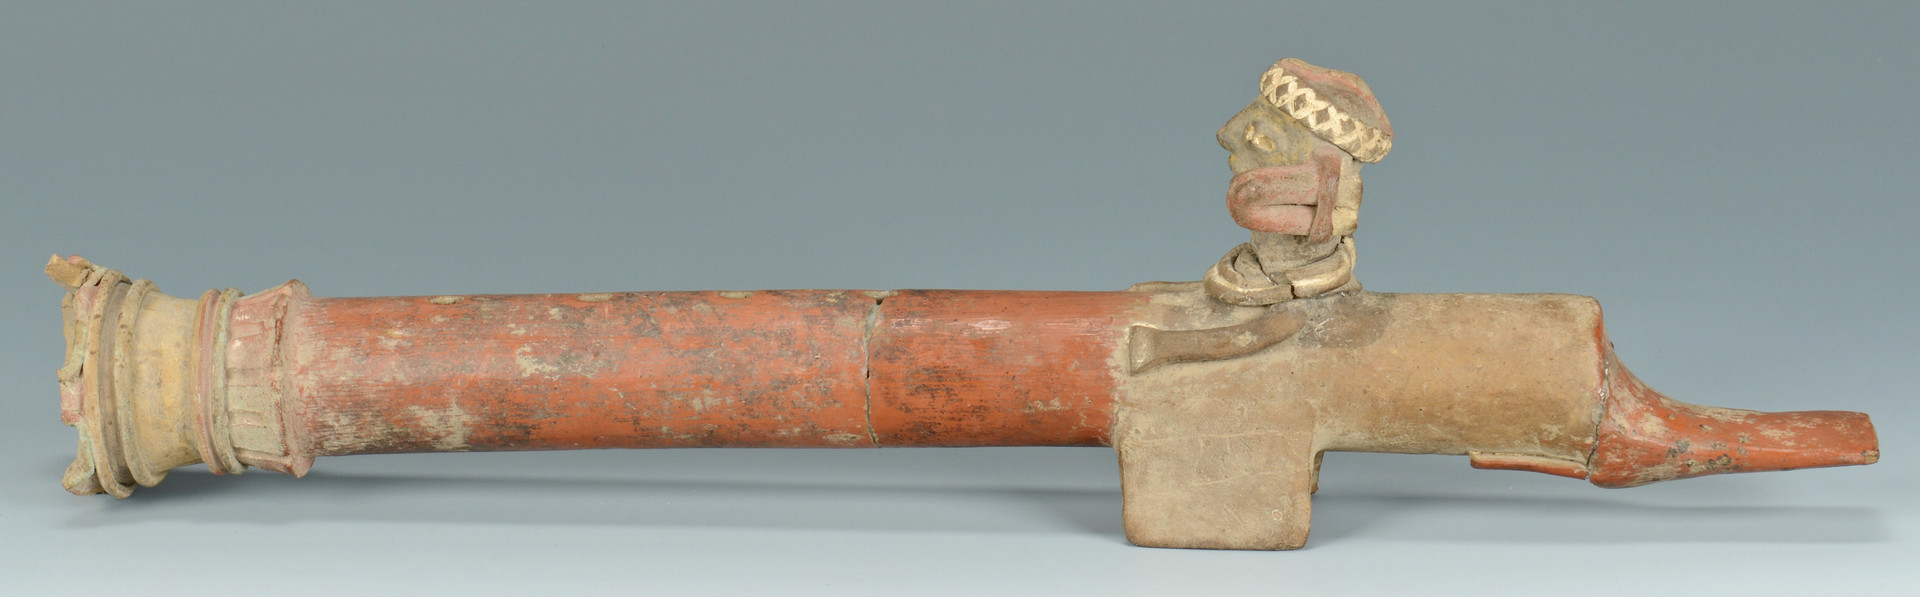 Lot 618: Pre Columbian Flute, Whistle & Figurals